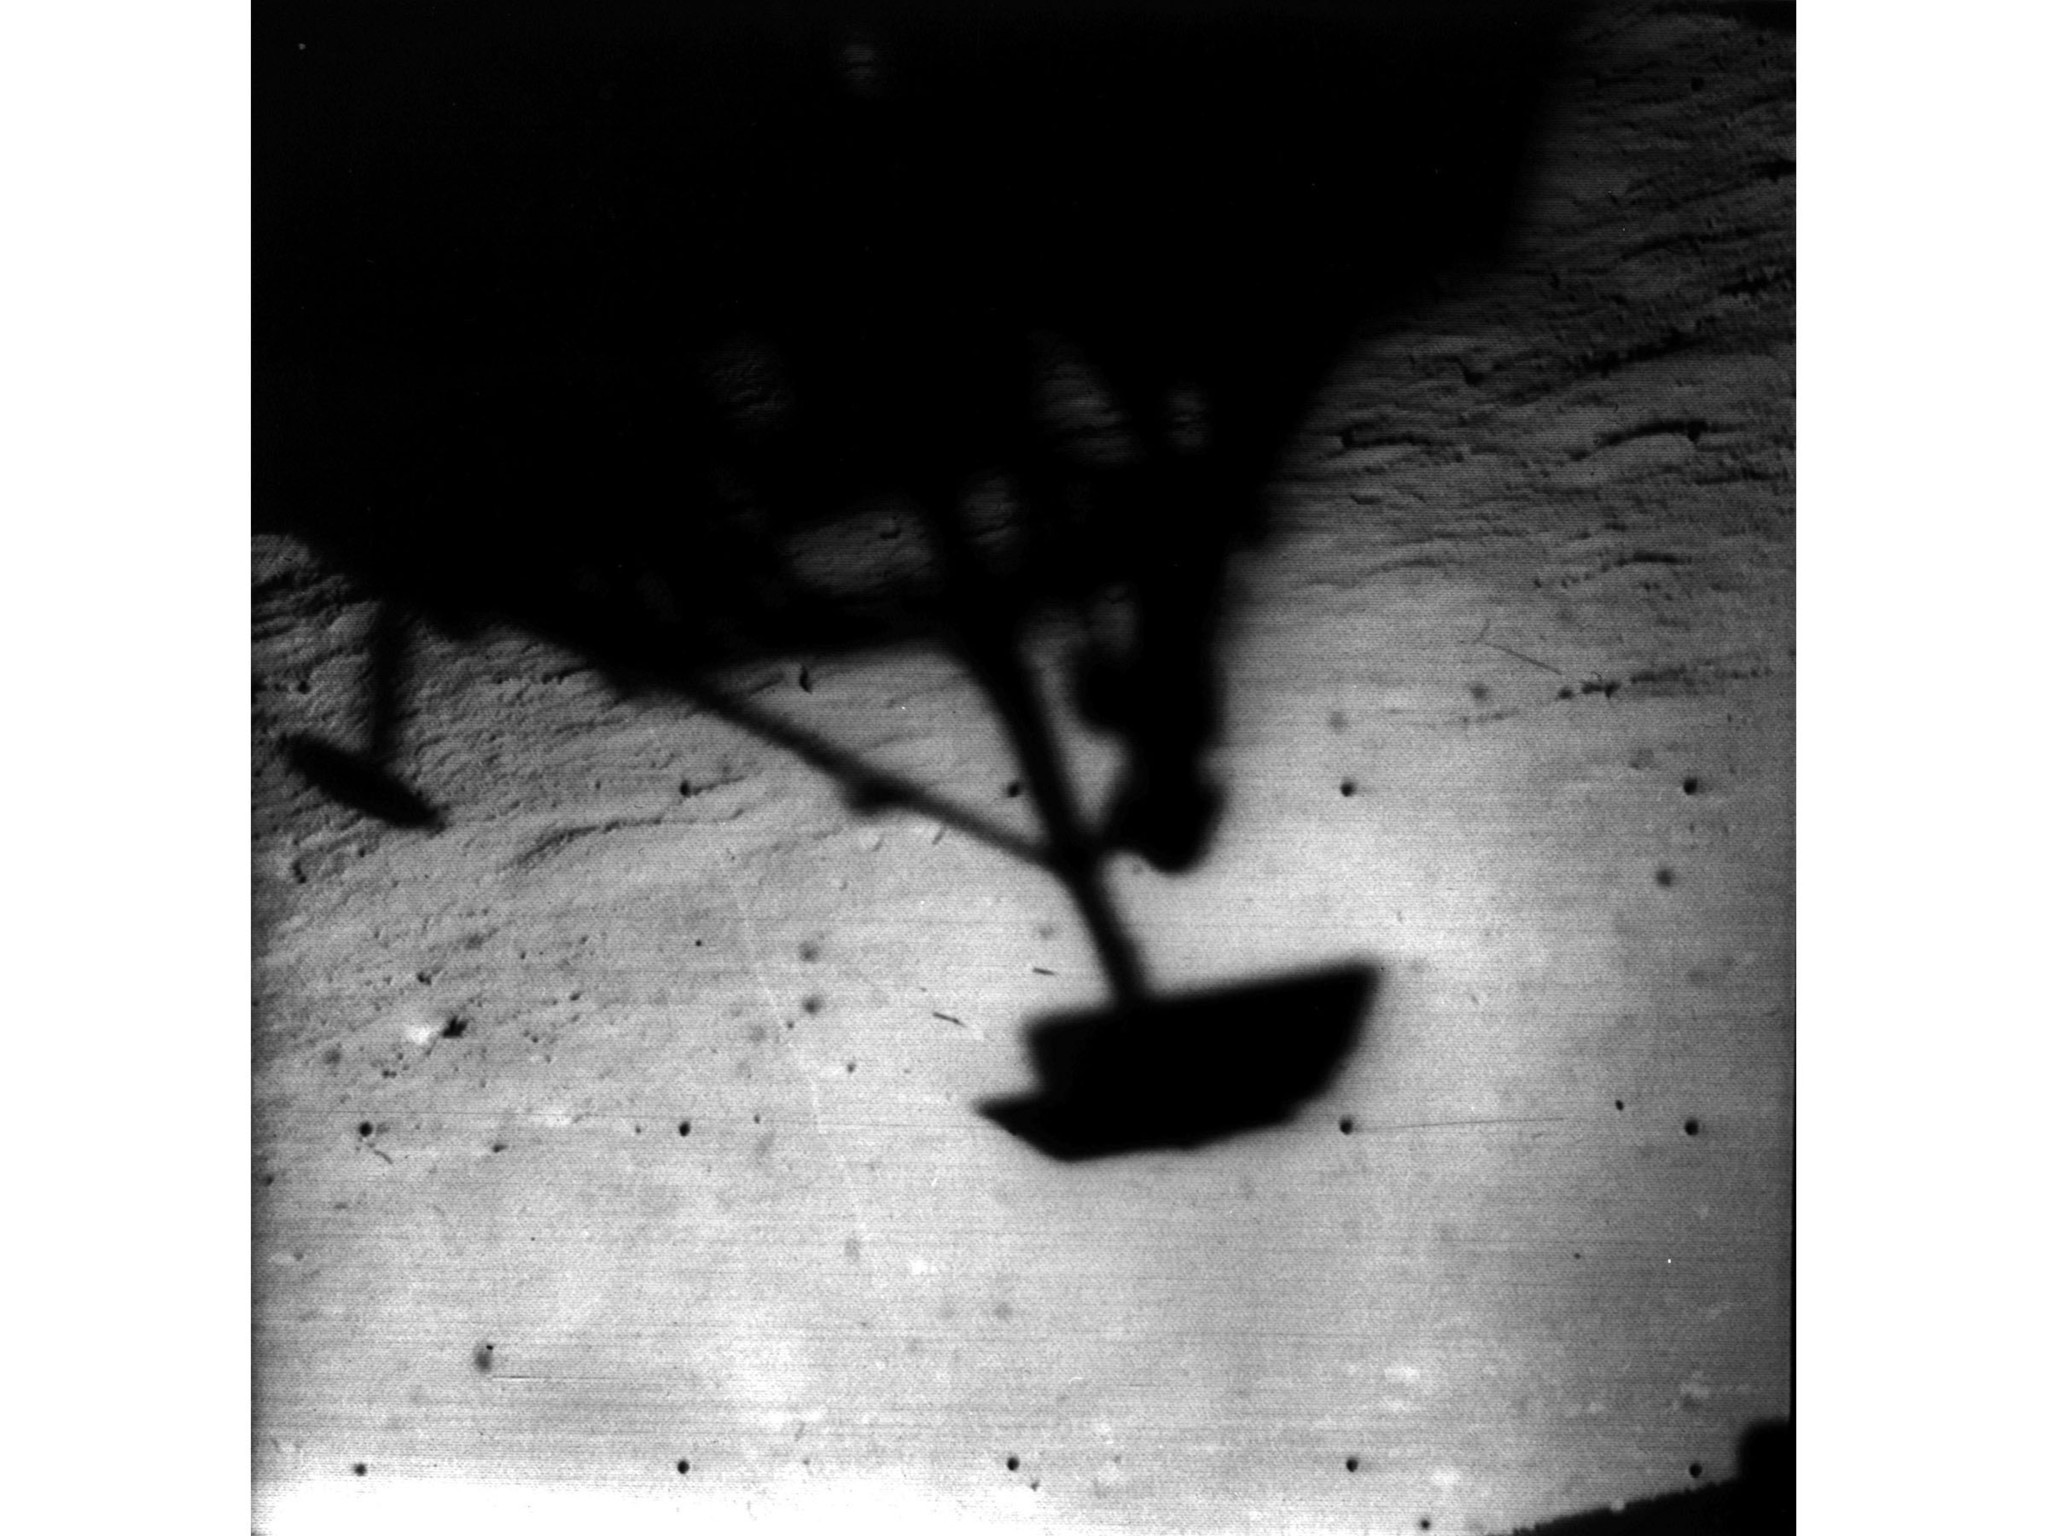 1966: Shadow of Surveyor 1 on the moon. Surveyor 1 was launched on May 30, 1966 and landed on the m